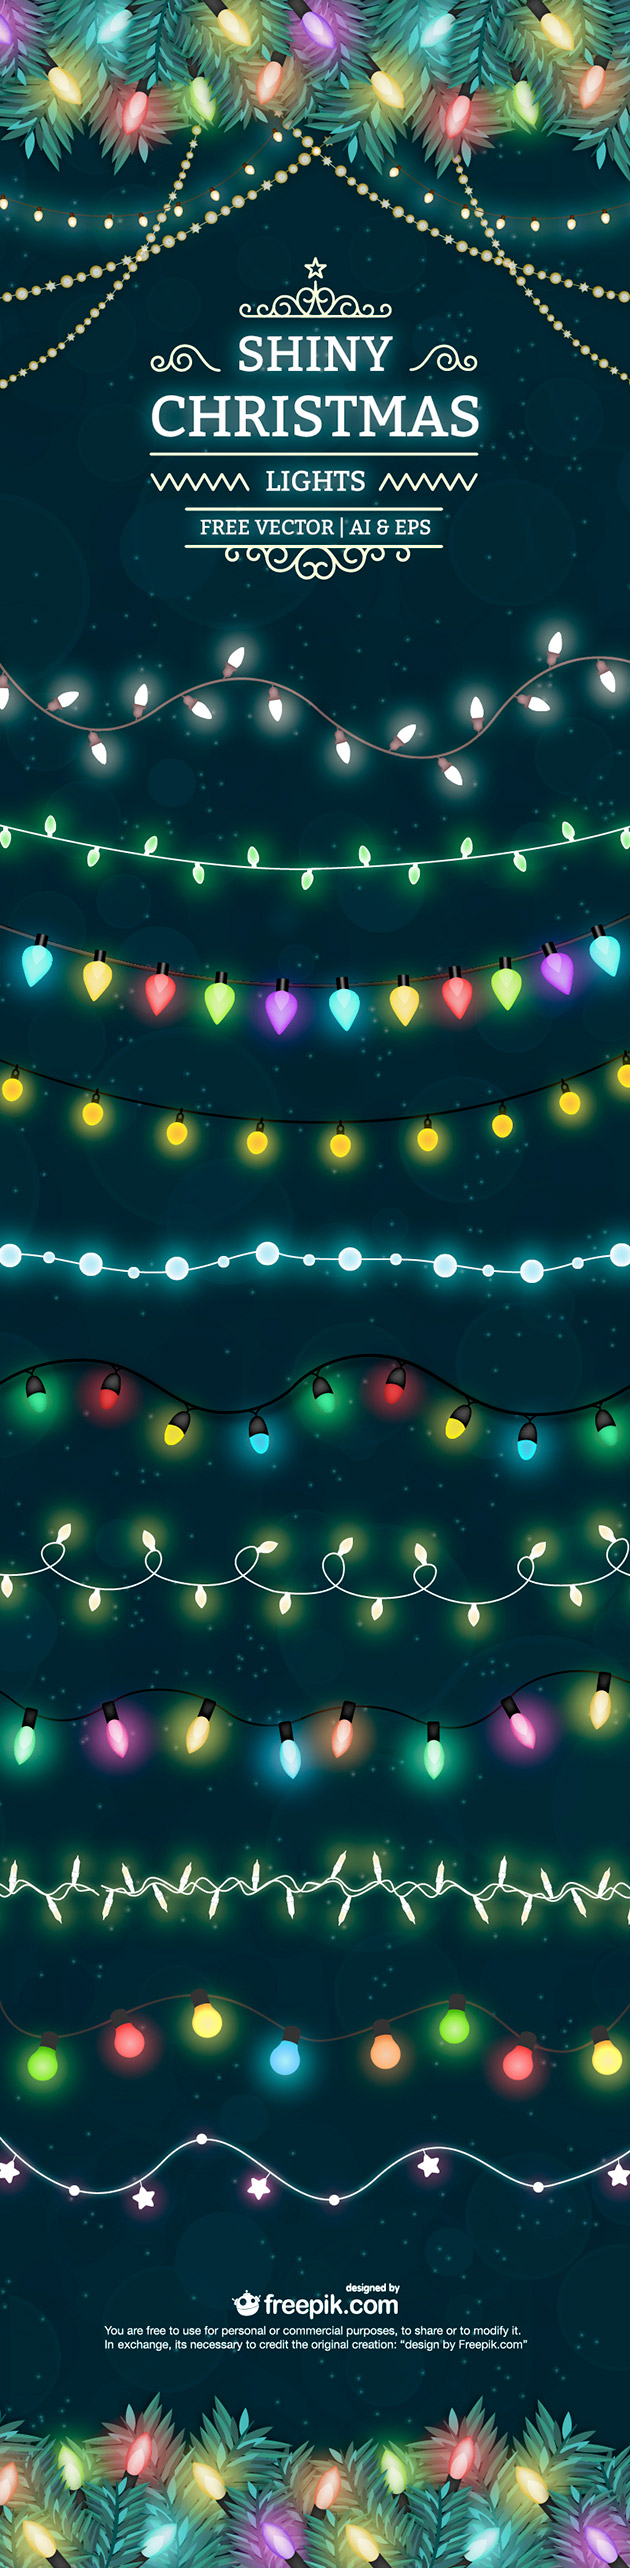 Shiny Christmas light free vector set | Creative Nerds